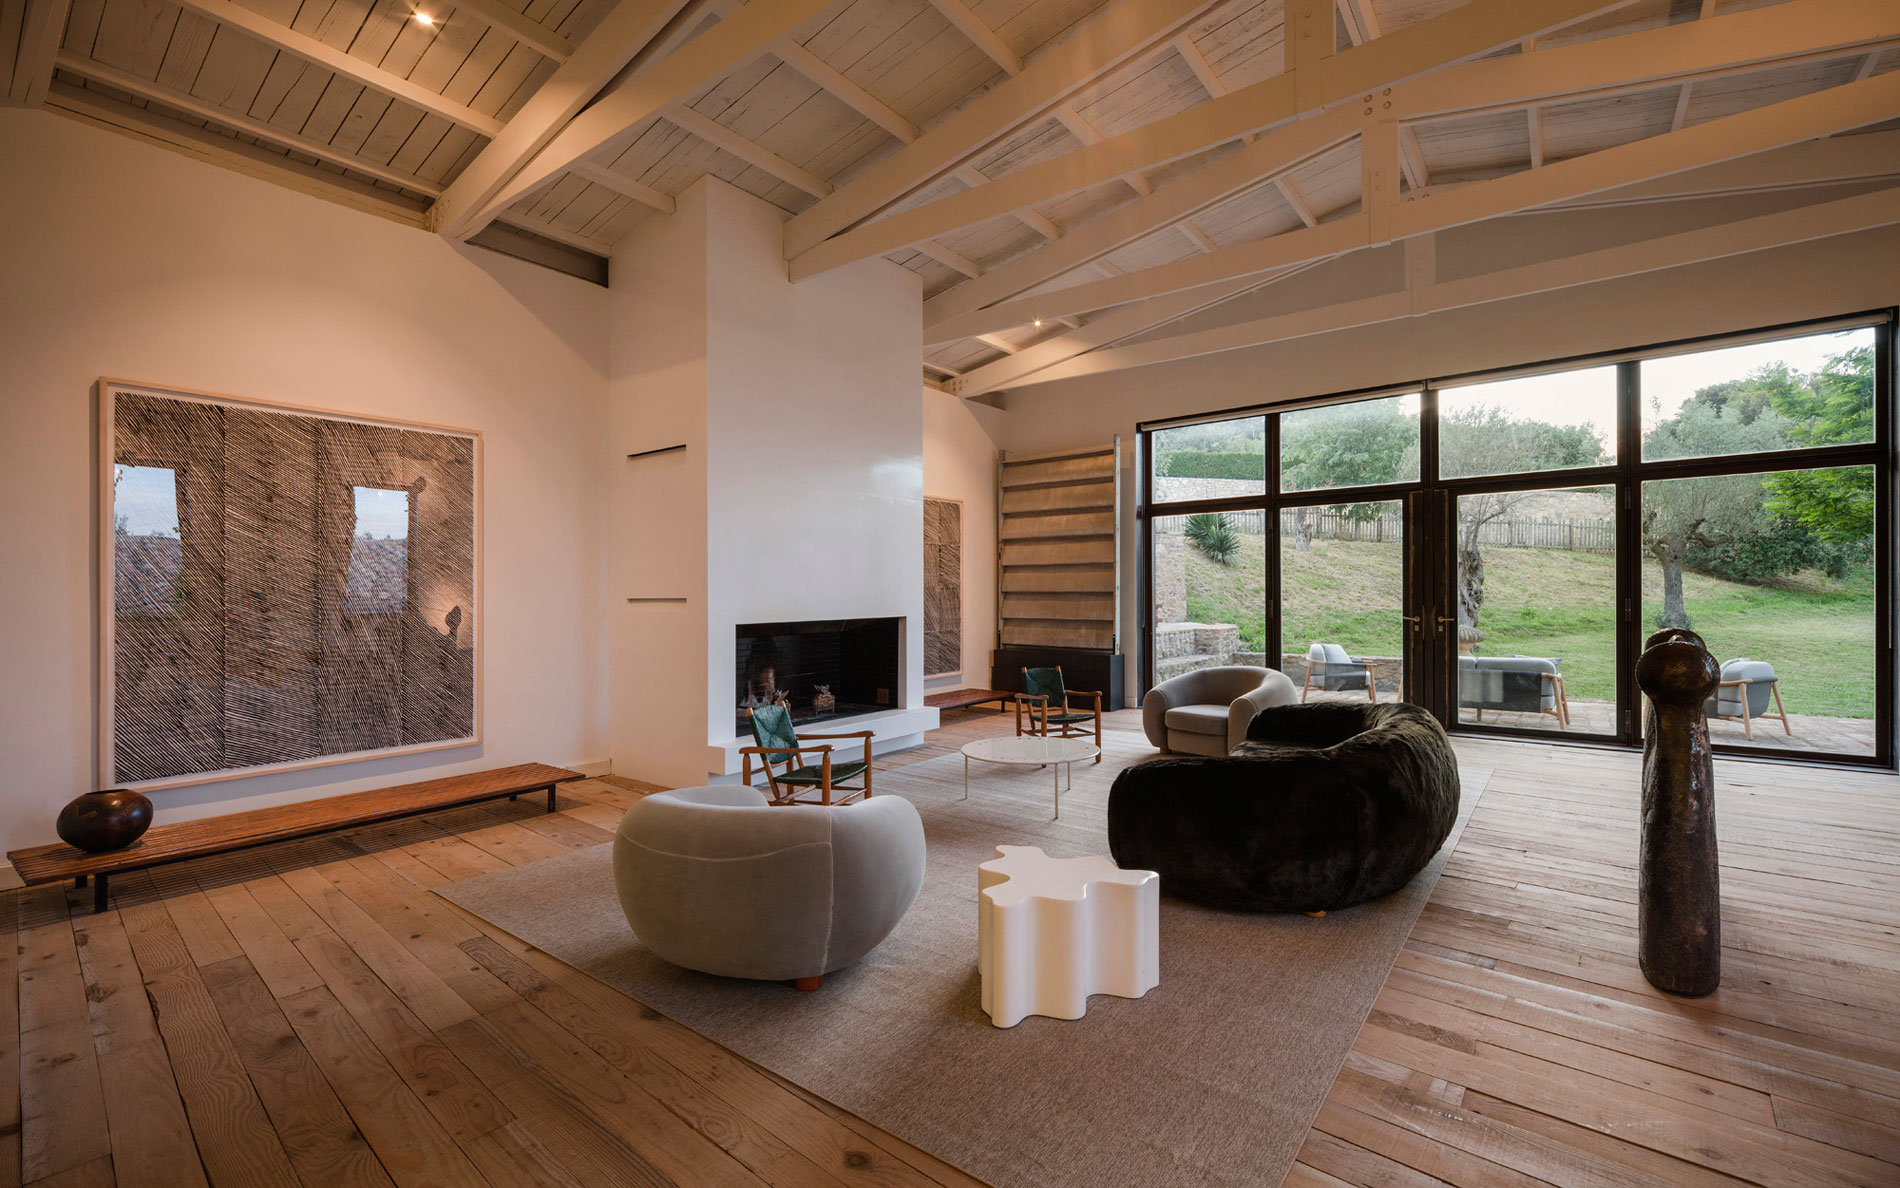 A rustic home full of art designed by francesc rif studio for Interni casa moderna